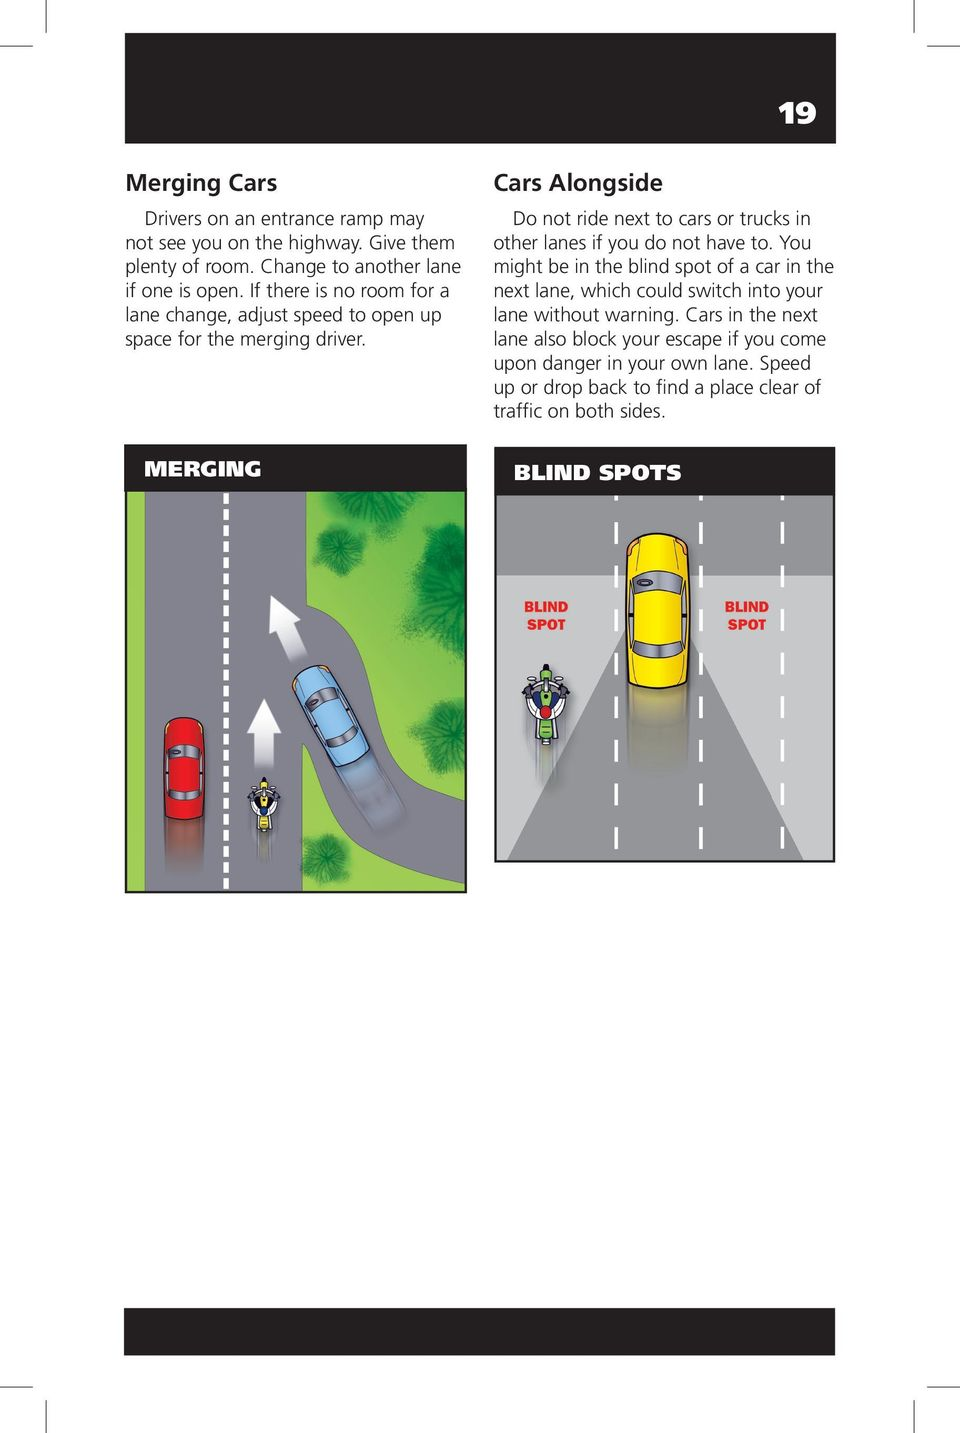 merging Cars Alongside Do not ride next to cars or trucks in other lanes if you do not have to.